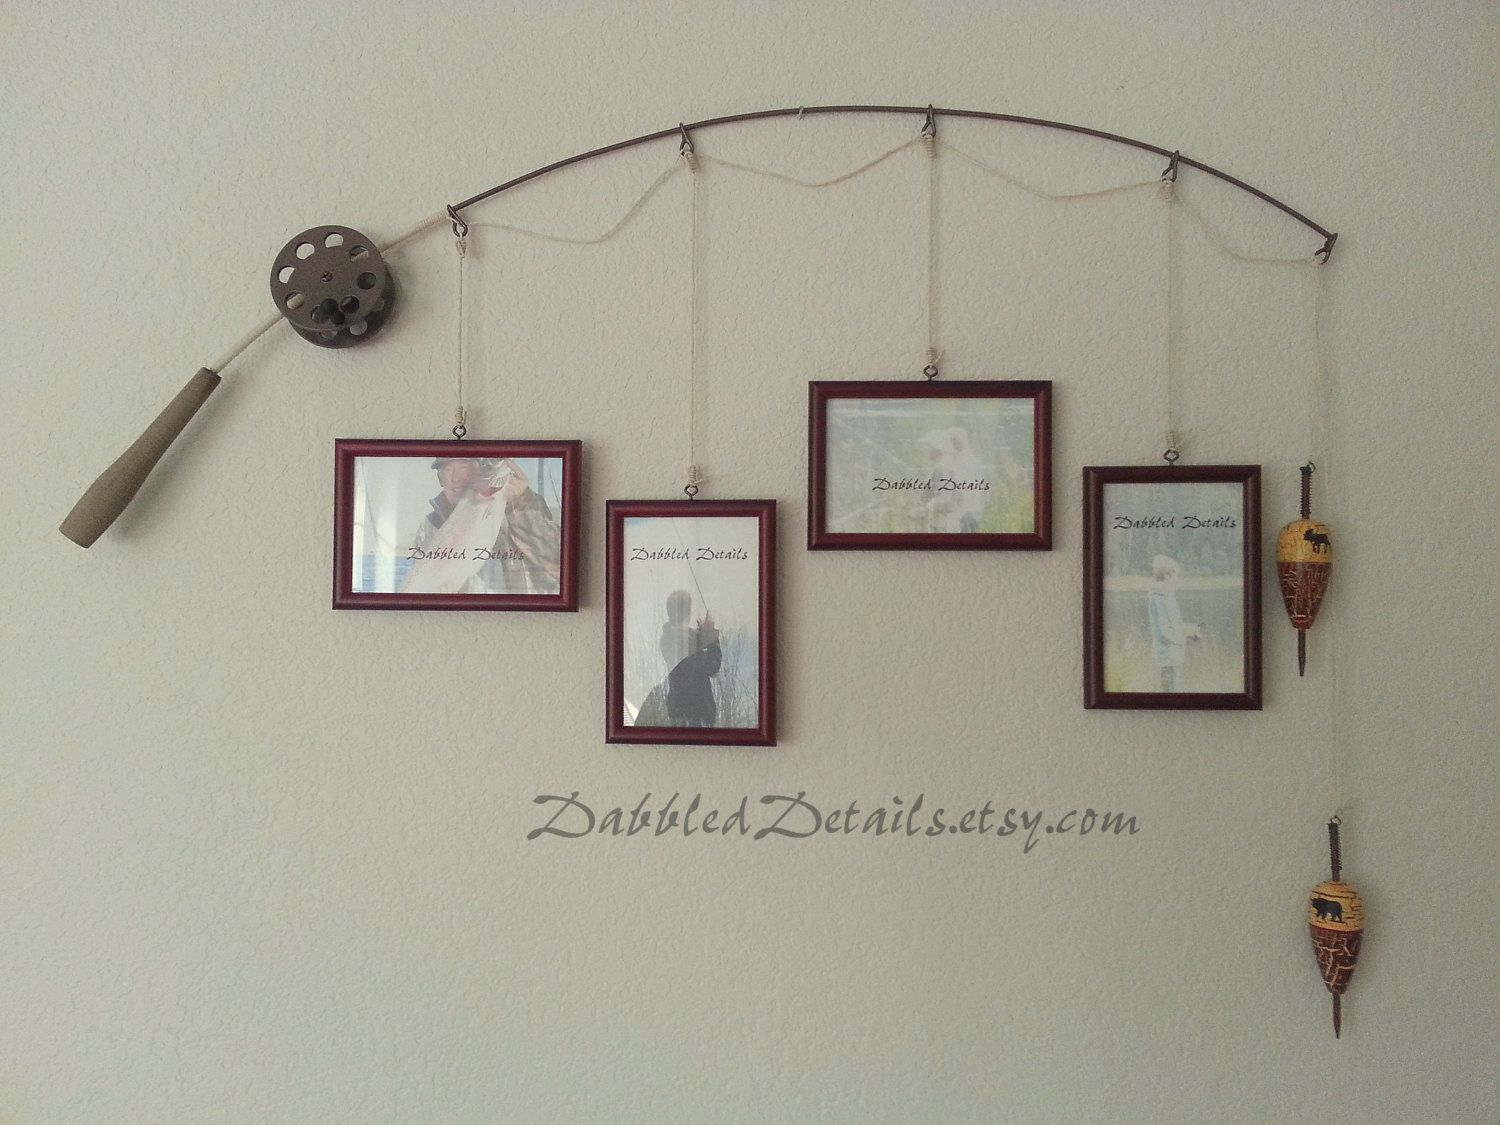 Fishing Pole Picture Frame - Metal Brown - 4 Frames - 4 in x 6 in ...